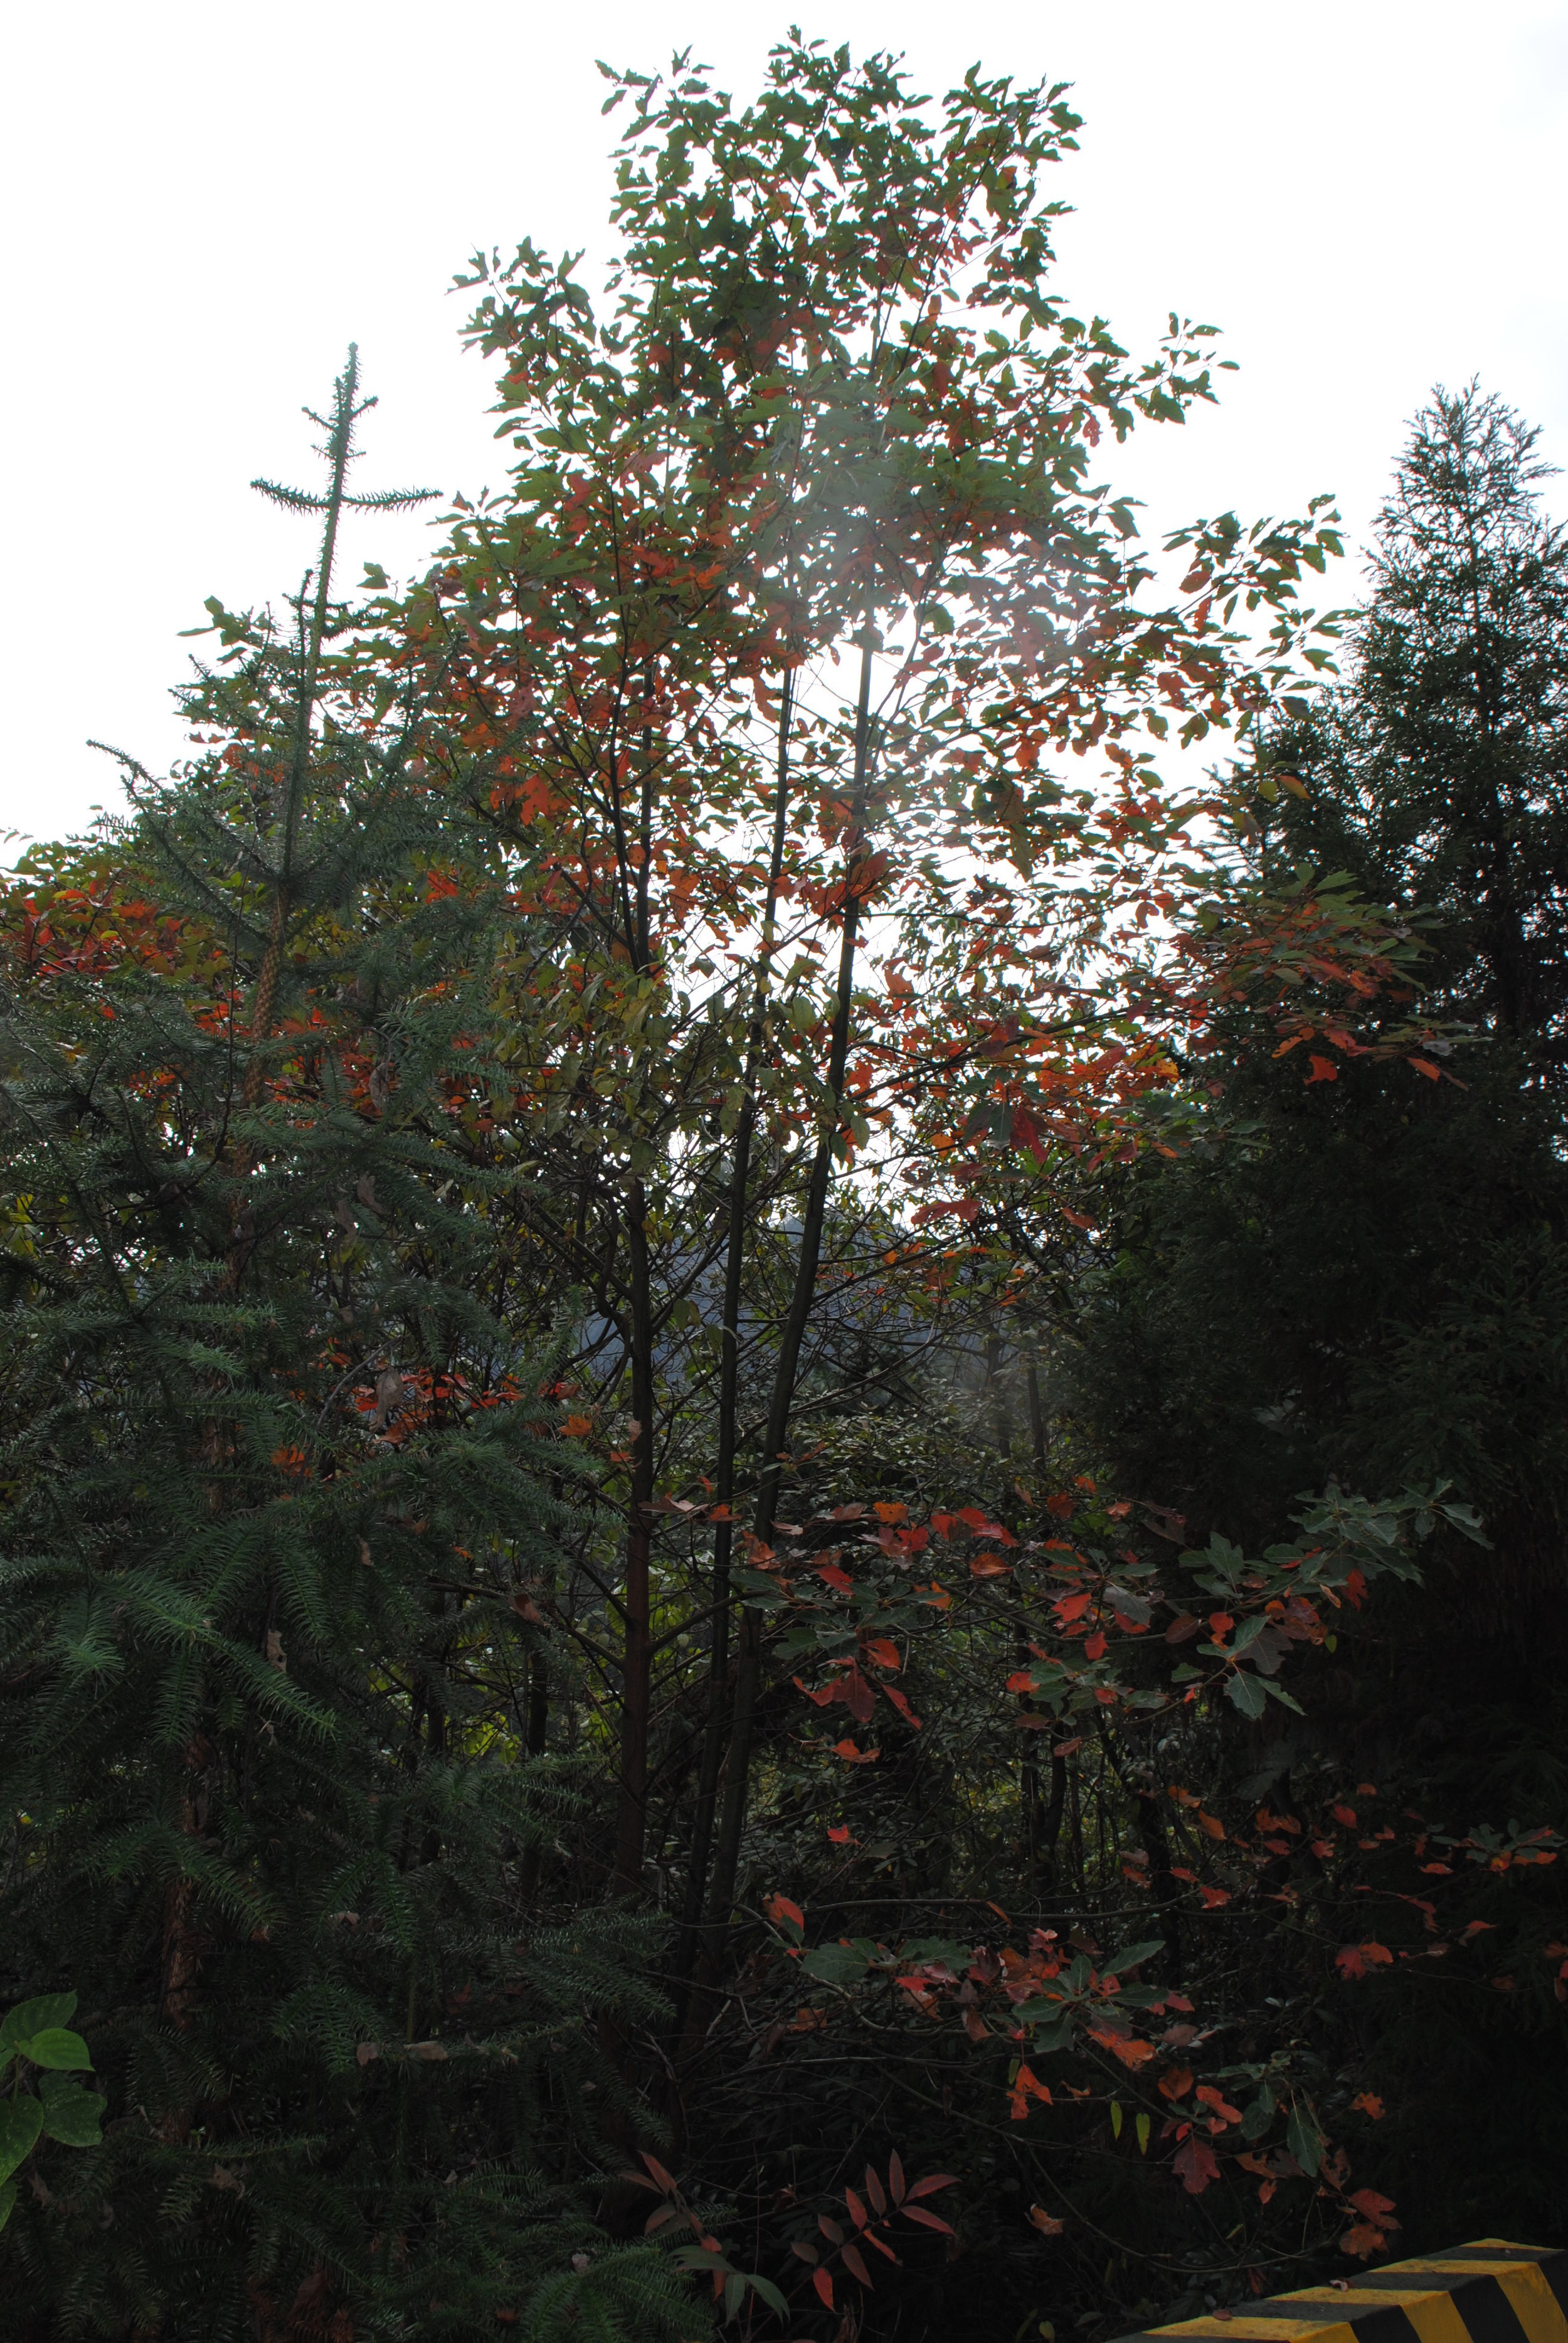 Sassafras tzumu growing wild in the Nanling Mountains in China.